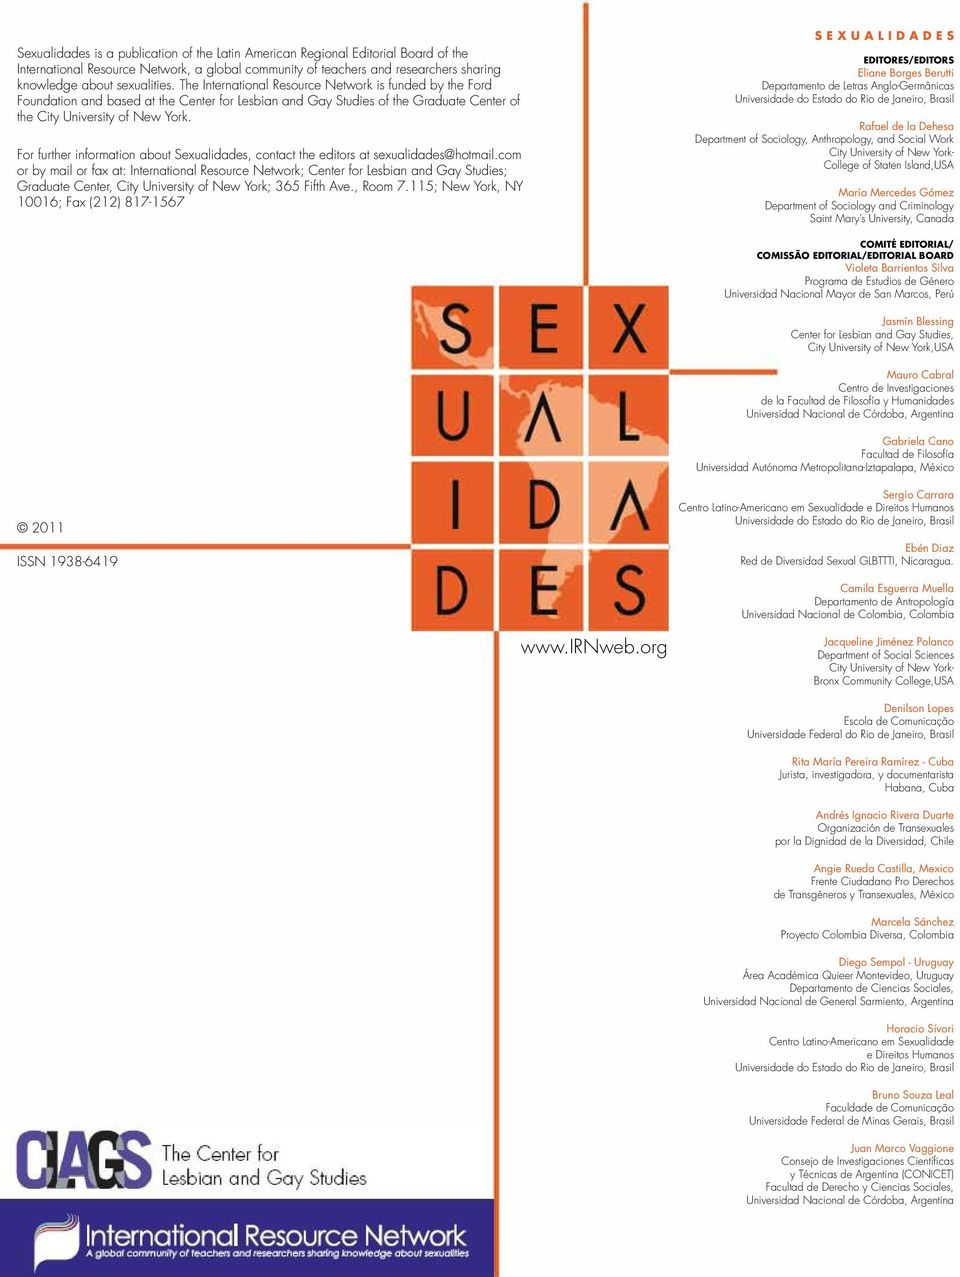 For further information about Sexualidades, contact the editors at sexualidades@hotmail.